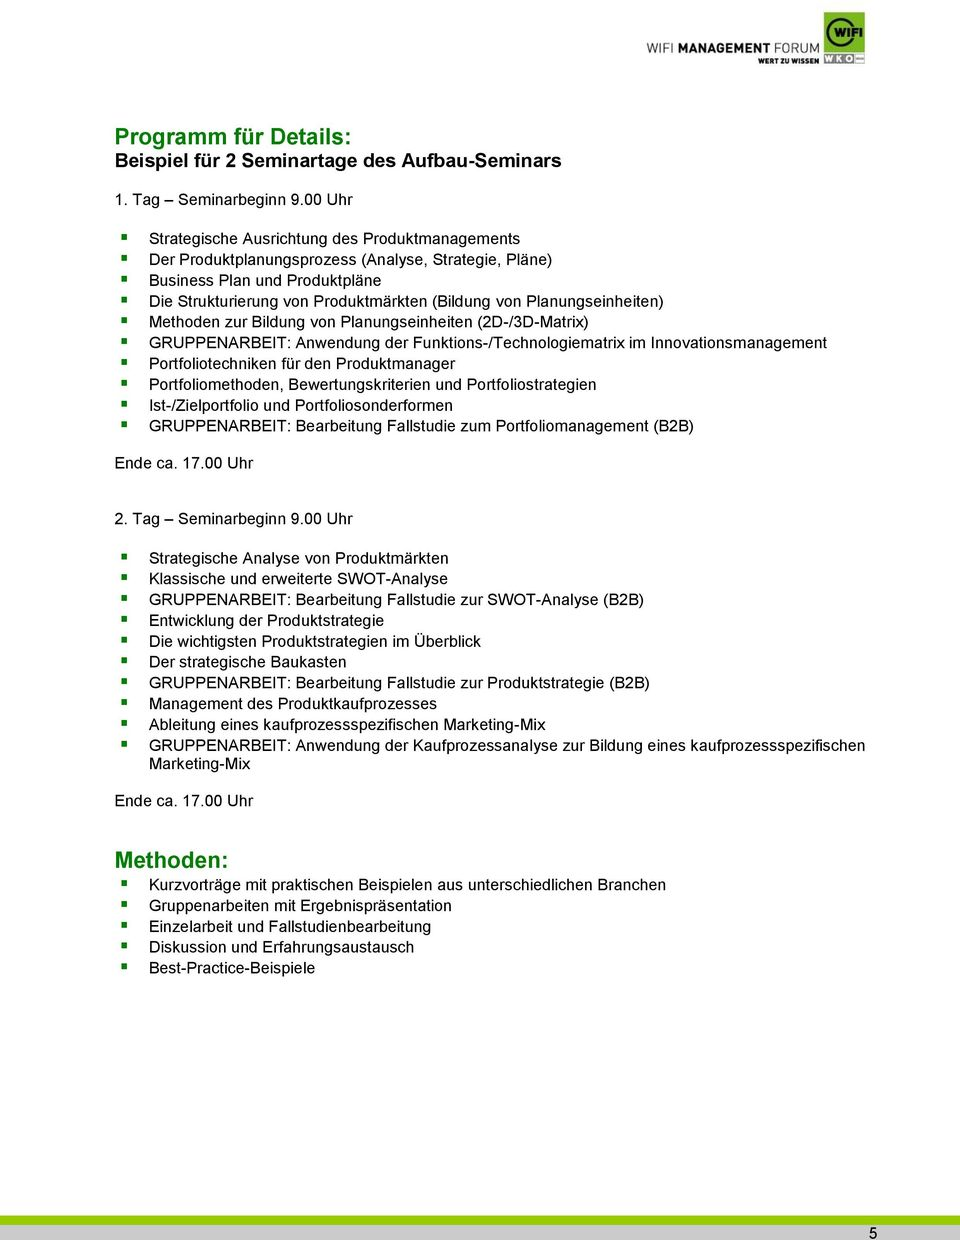 Planungseinheiten) Methoden zur Bildung von Planungseinheiten (2D-/3D-Matrix) GRUPPENARBEIT: Anwendung der Funktions-/Technologiematrix im Innovationsmanagement Portfoliotechniken für den